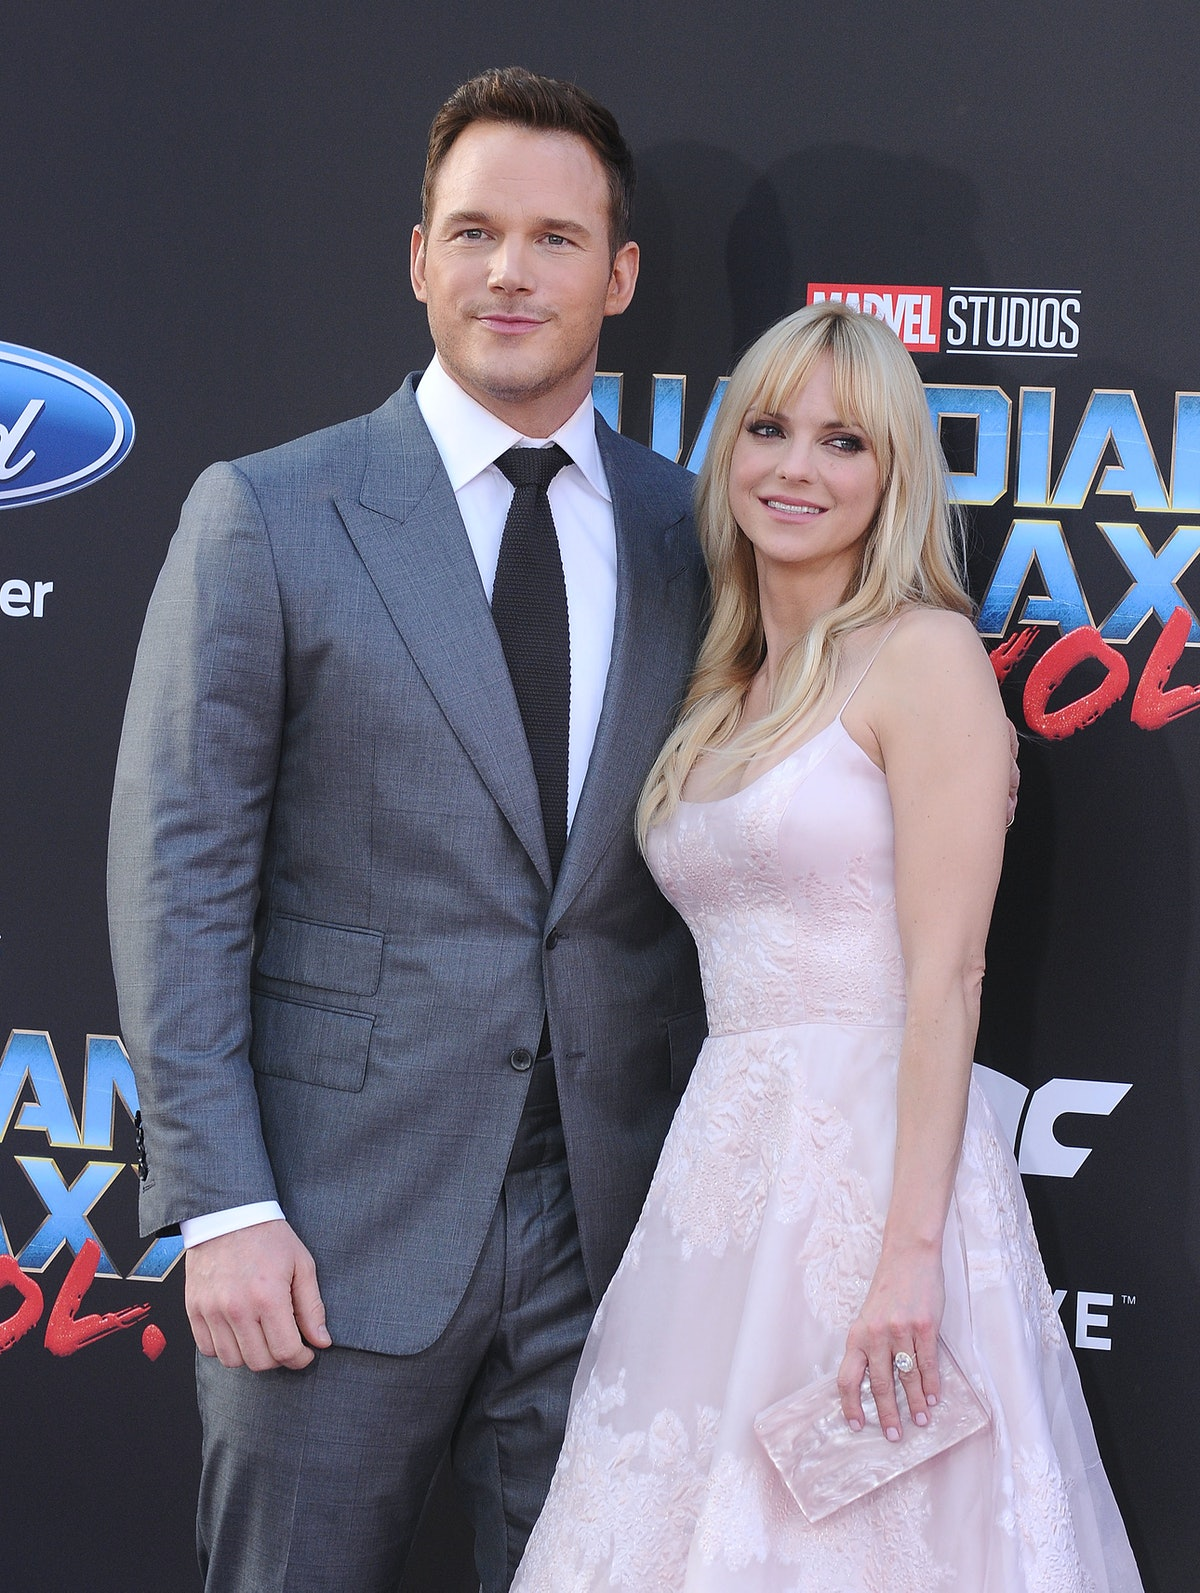 """HOLLYWOOD, CA - APRIL 19:  Actor Chris Pratt and actress Anna Faris attend the premiere of """"Guardians of the Galaxy Vol. 2"""" at Dolby Theatre on April 19, 2017 in Hollywood, California.  (Photo by Jason LaVeris/FilmMagic)"""